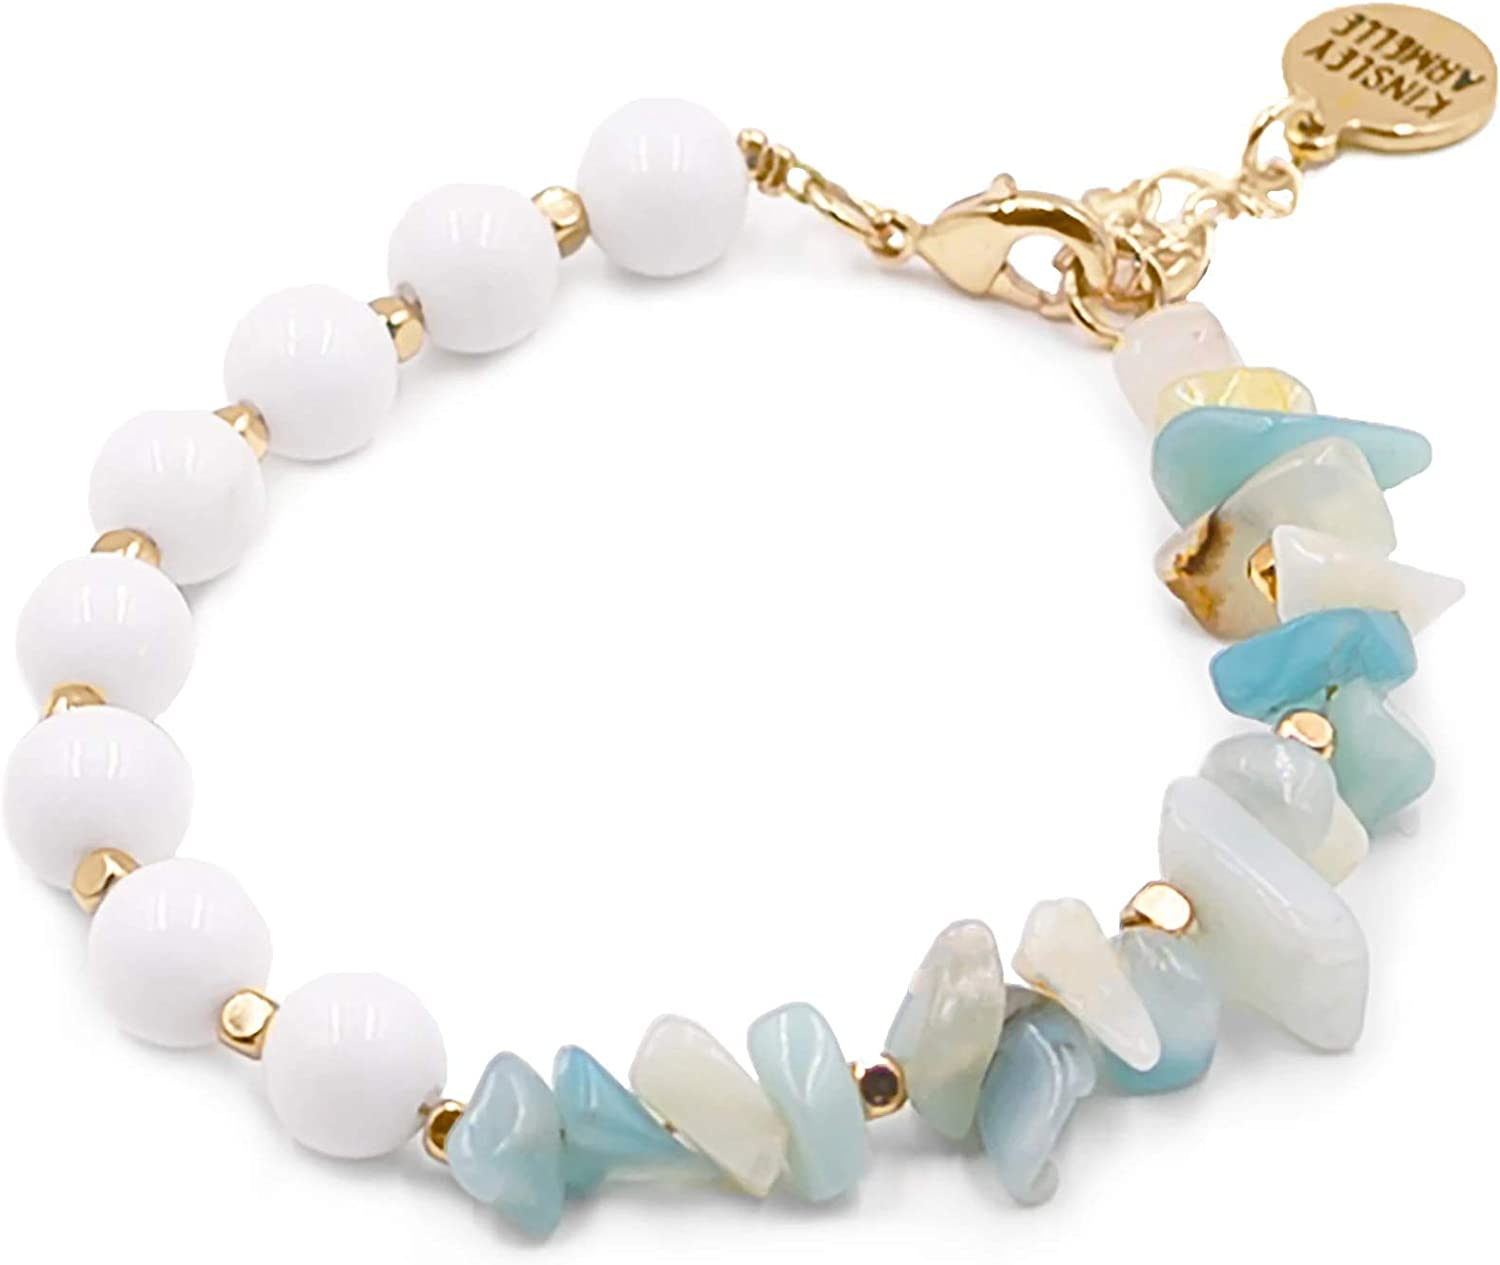 Kinsley Armelle Challenge Many popular brands the lowest price of Japan Pixie Collection Bracelet Solar -